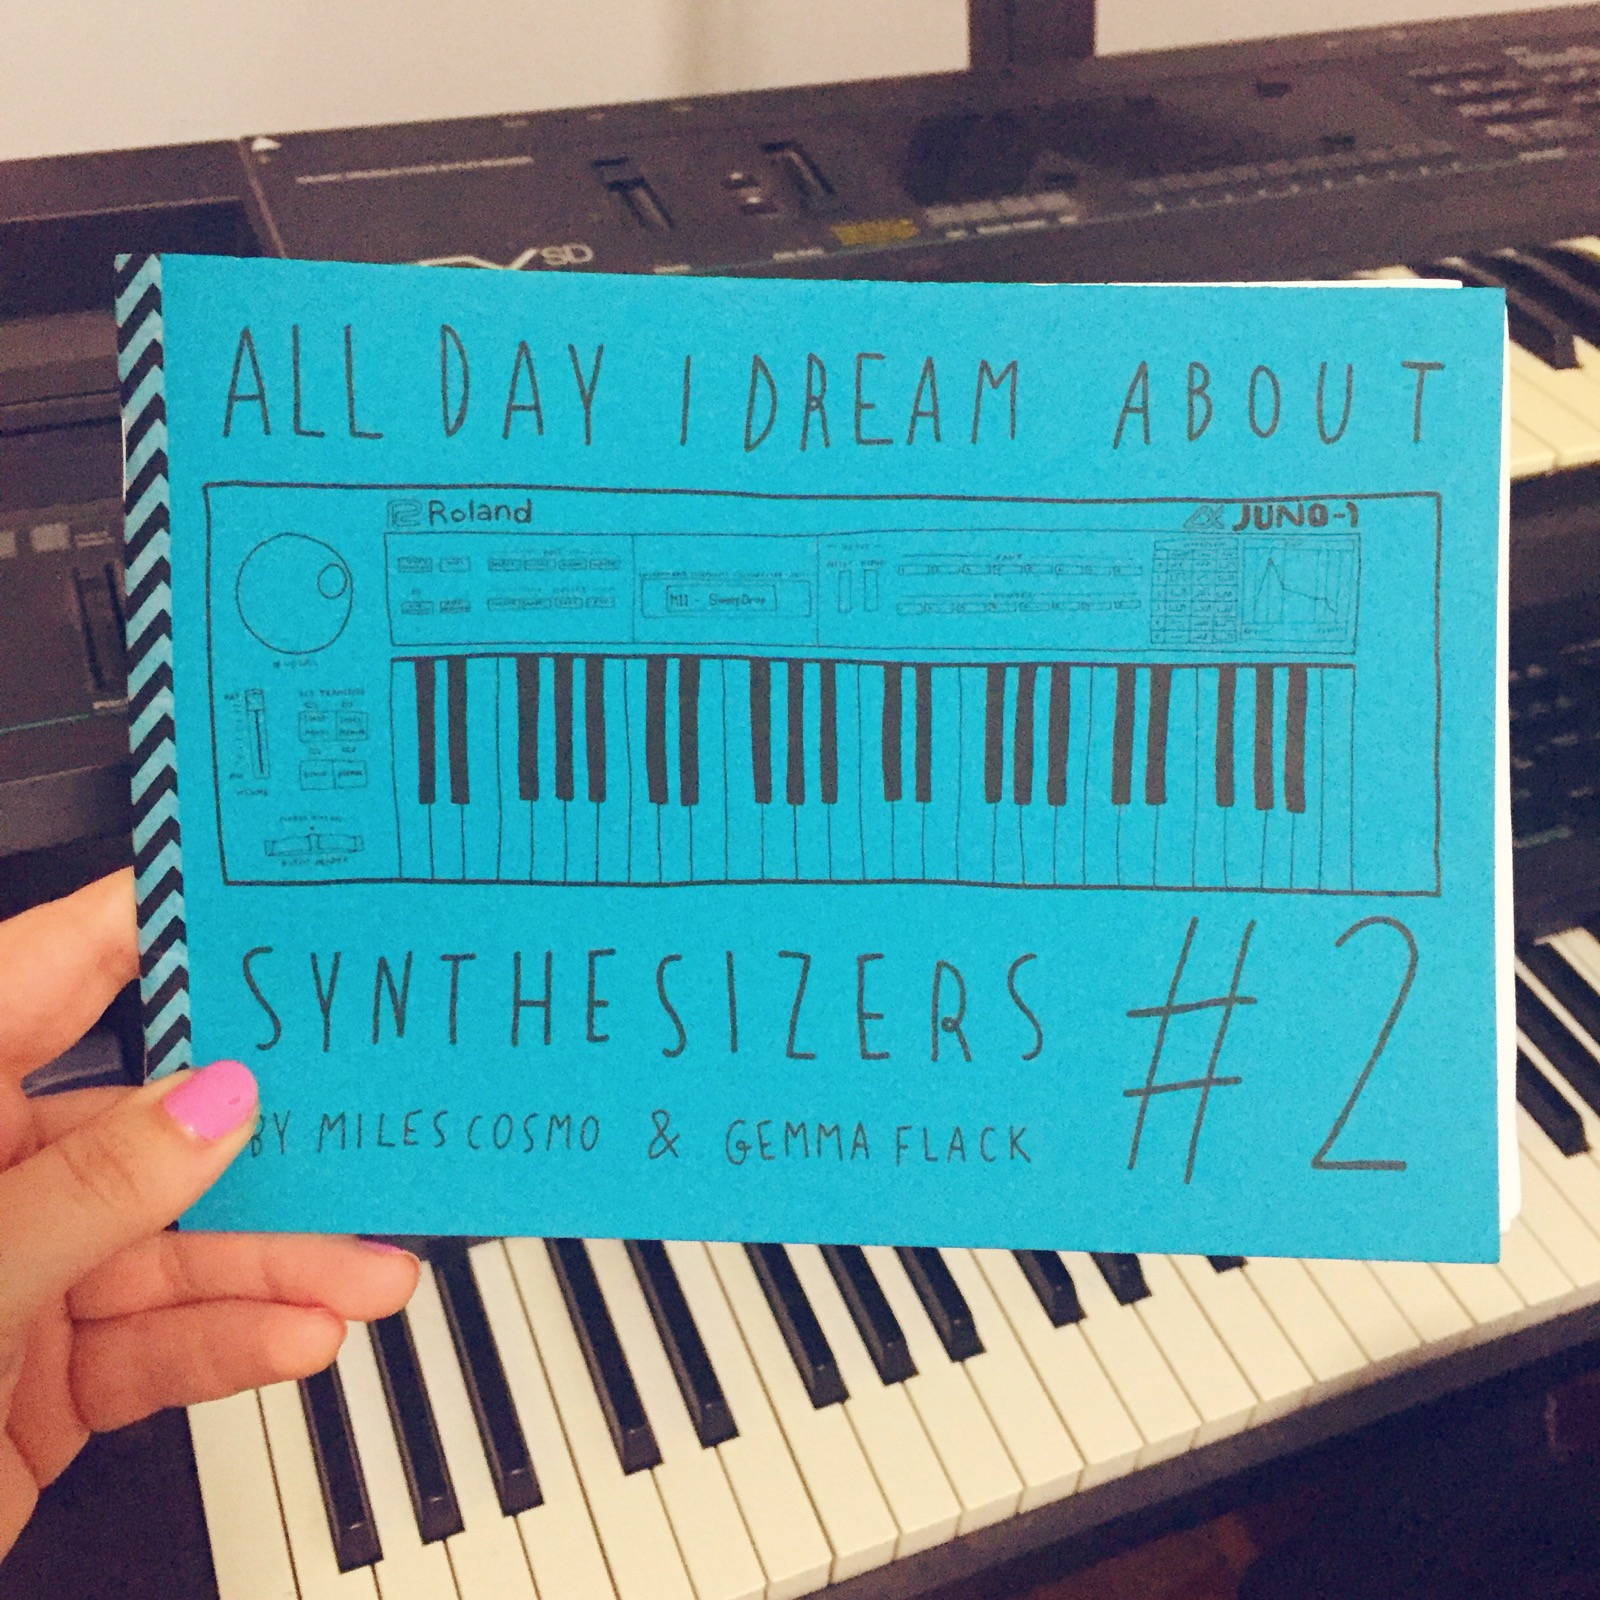 All Day I Dream About Synthesizers #2